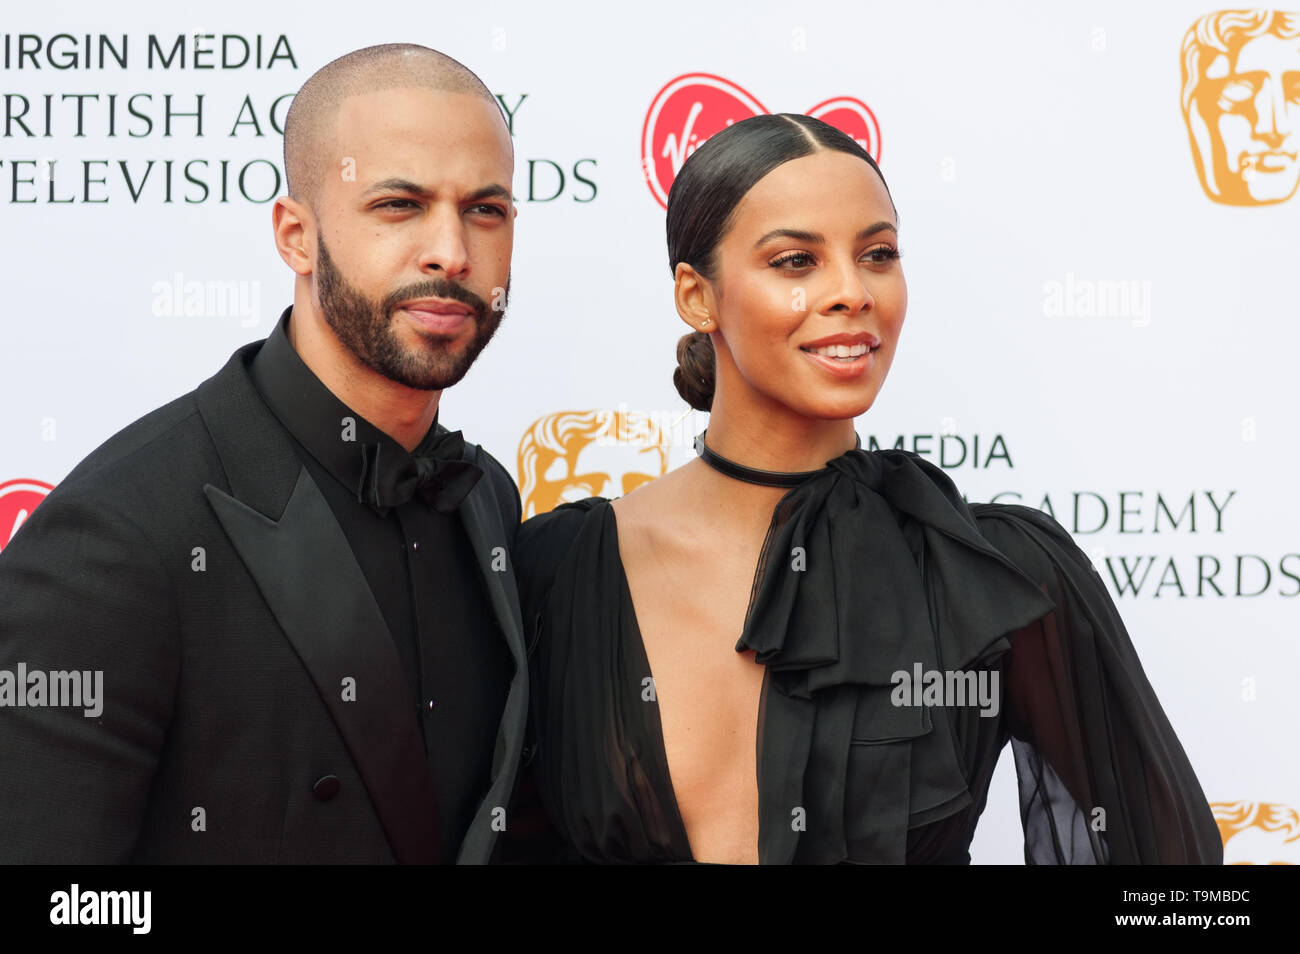 London, UK. 12th May 2019. Marvin Humes and Rochelle Humes attend the Virgin Media British Academy Television Awards ceremony at the Royal Festival Hall. Credit: Wiktor Szymanowicz/Alamy Live News - Stock Image